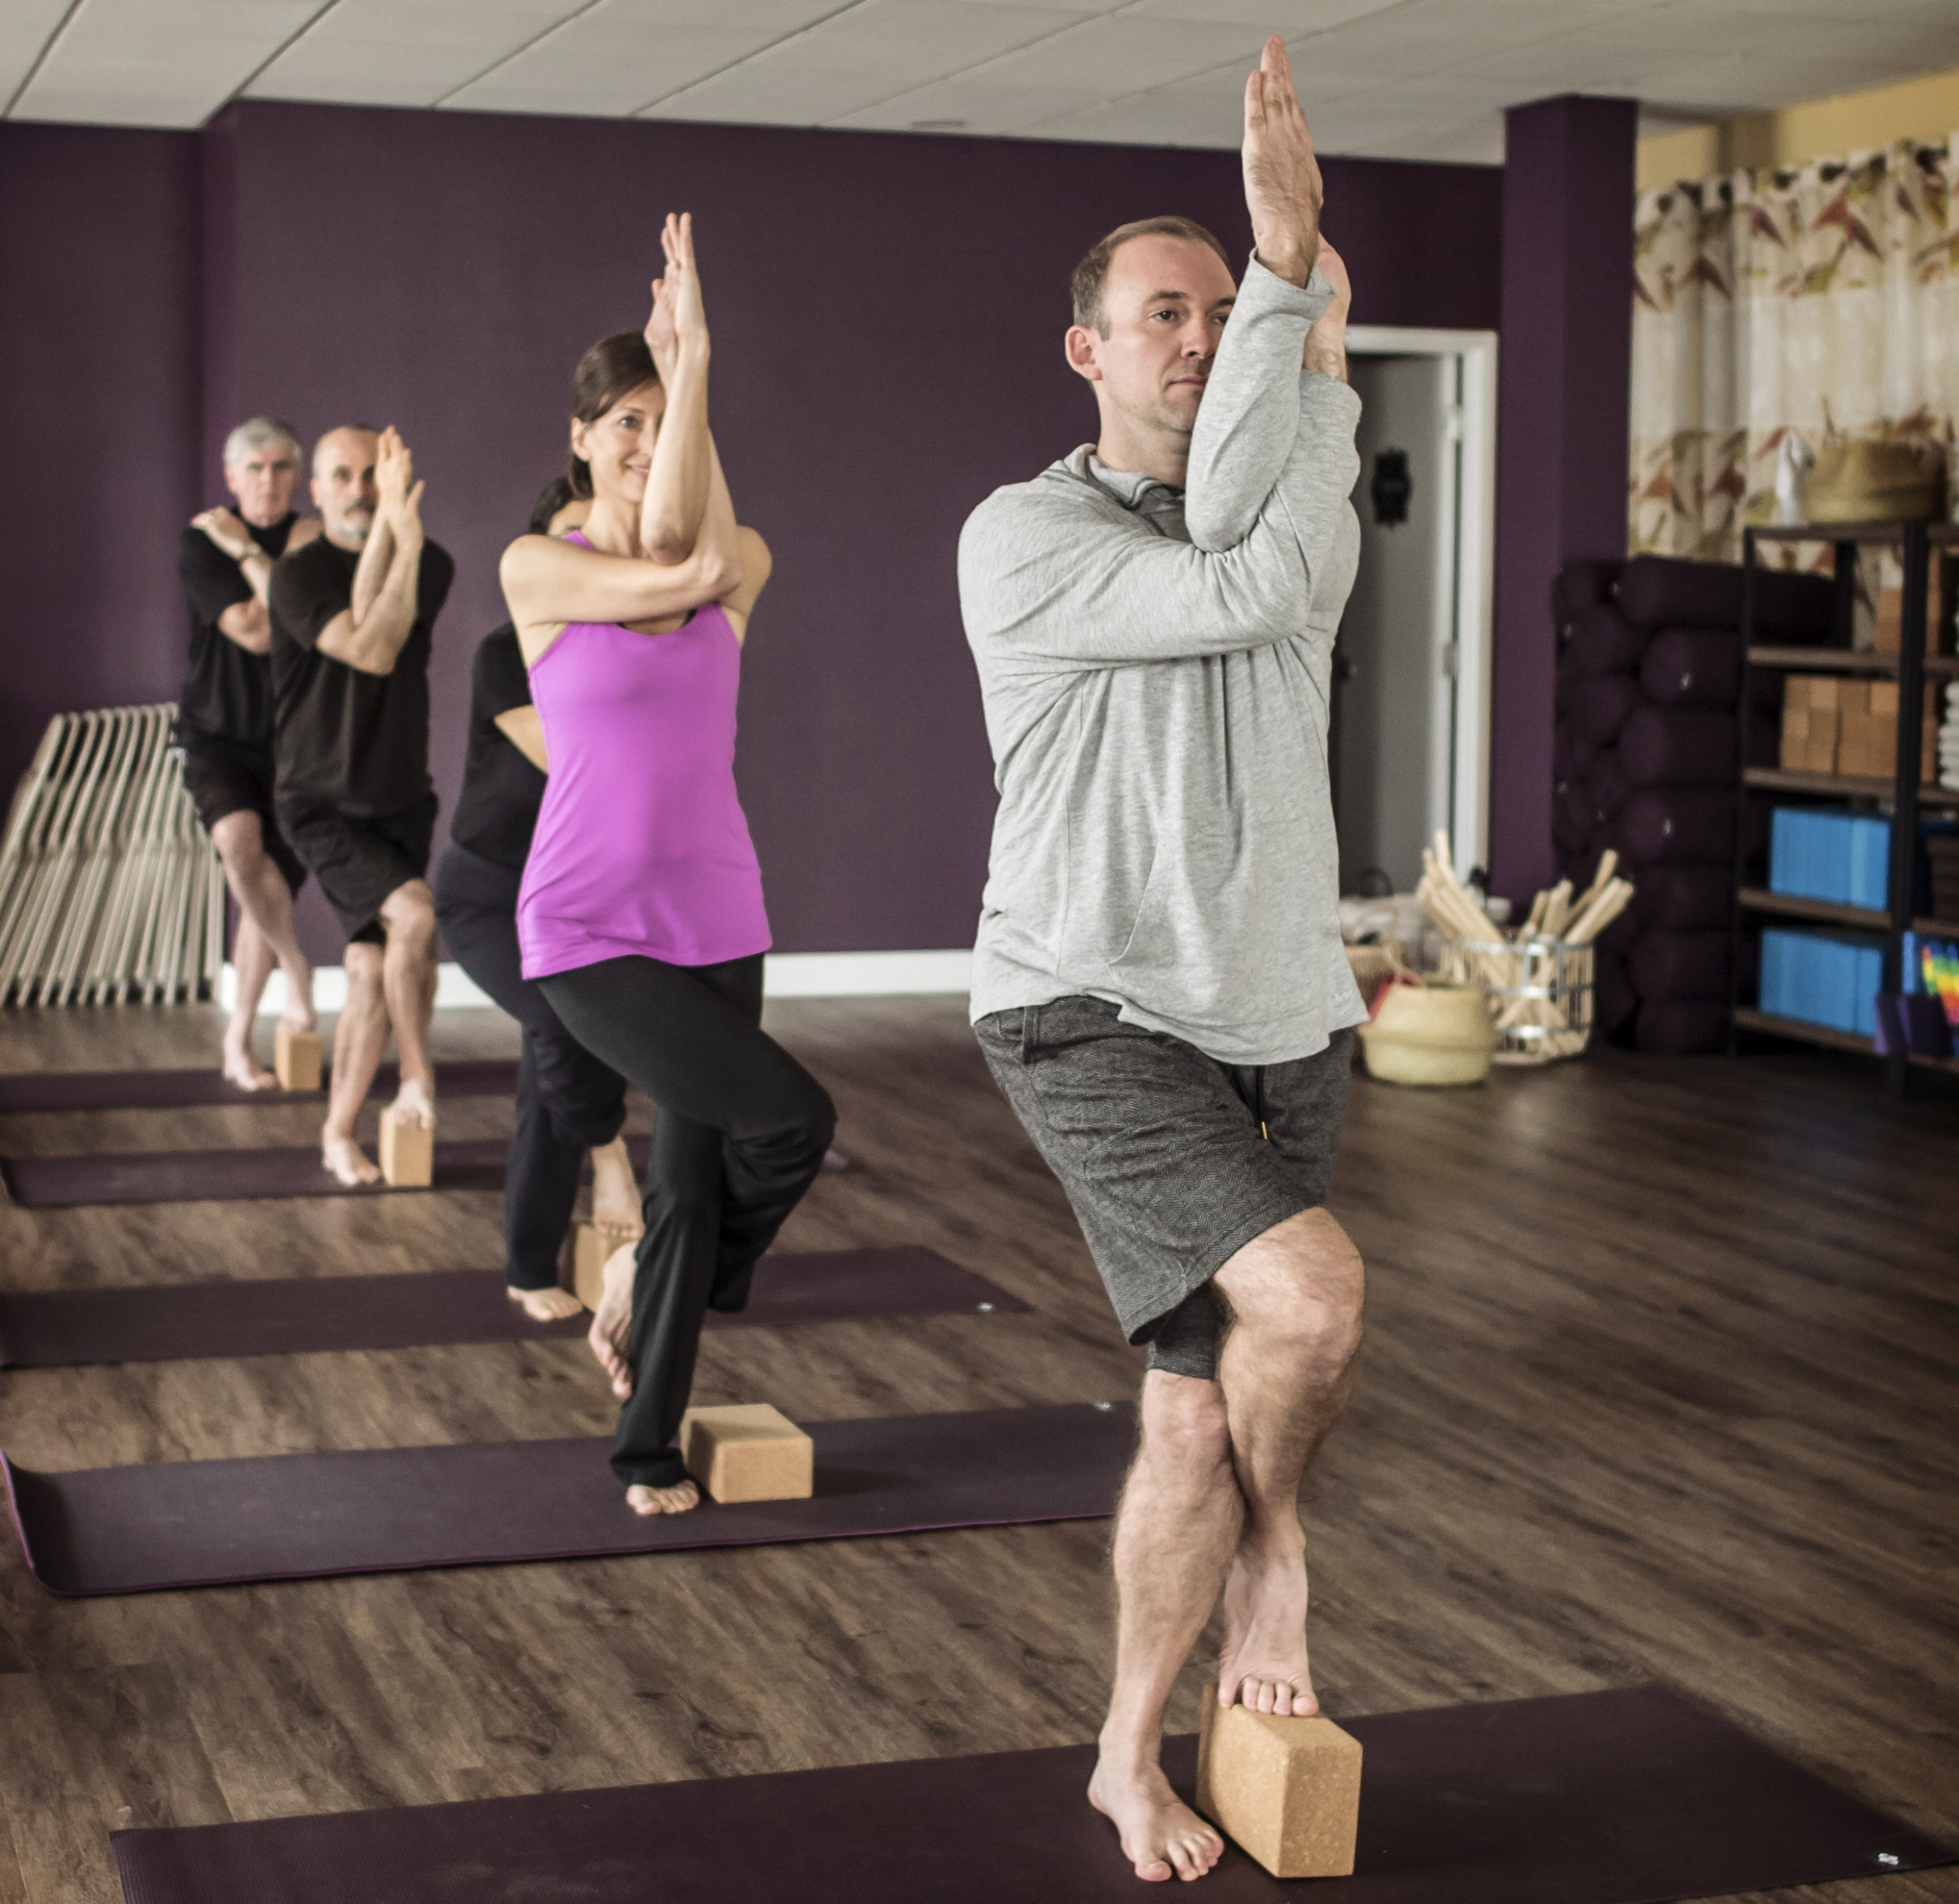 Gentle Yoga - Move through an easy going, slow-paced and gentle yoga class that will help you build strength, challenge your balance, and foster flexibility while learning to slow down and breathe. All levels of experience are welcome, including beginners. Flexibility is not required!